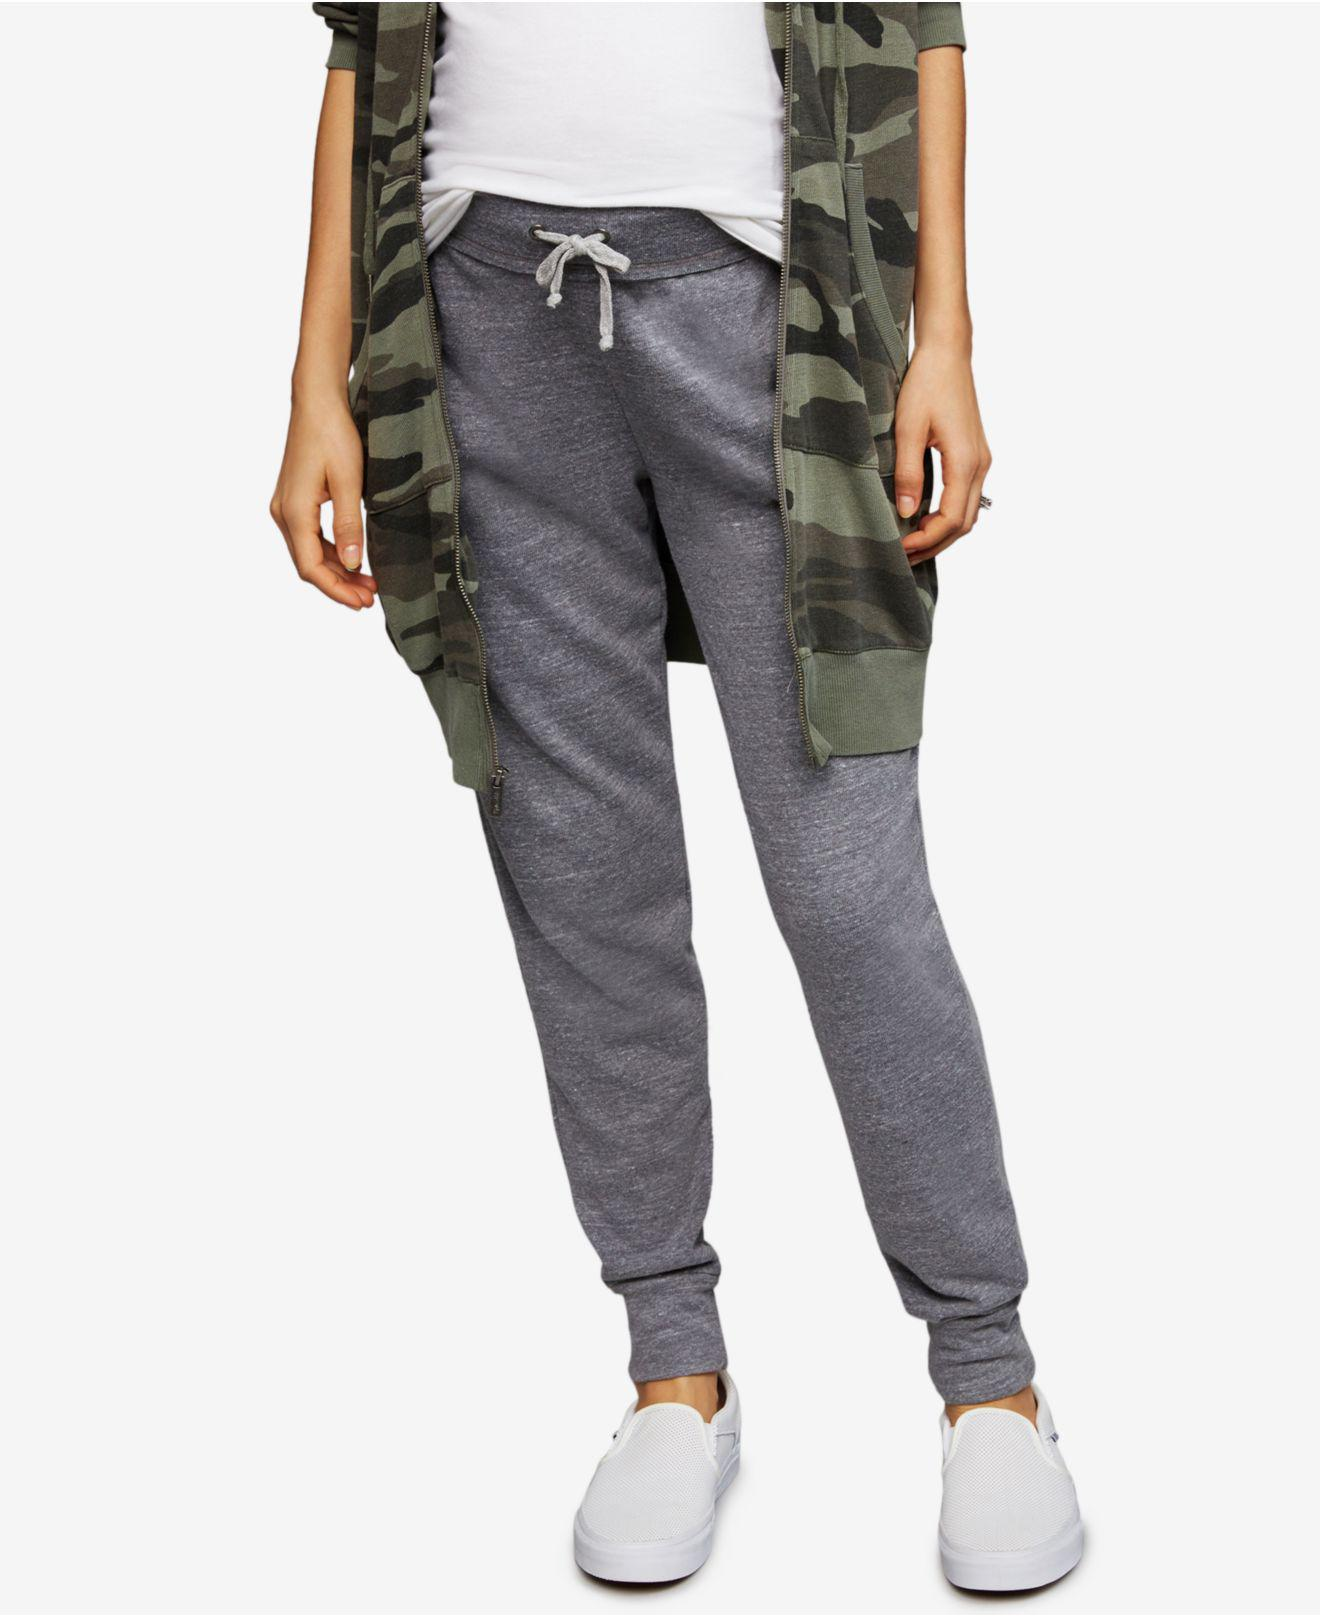 2f4a1f5aed585 Lyst - Splendid Maternity Under-belly Jogger Pants in Gray